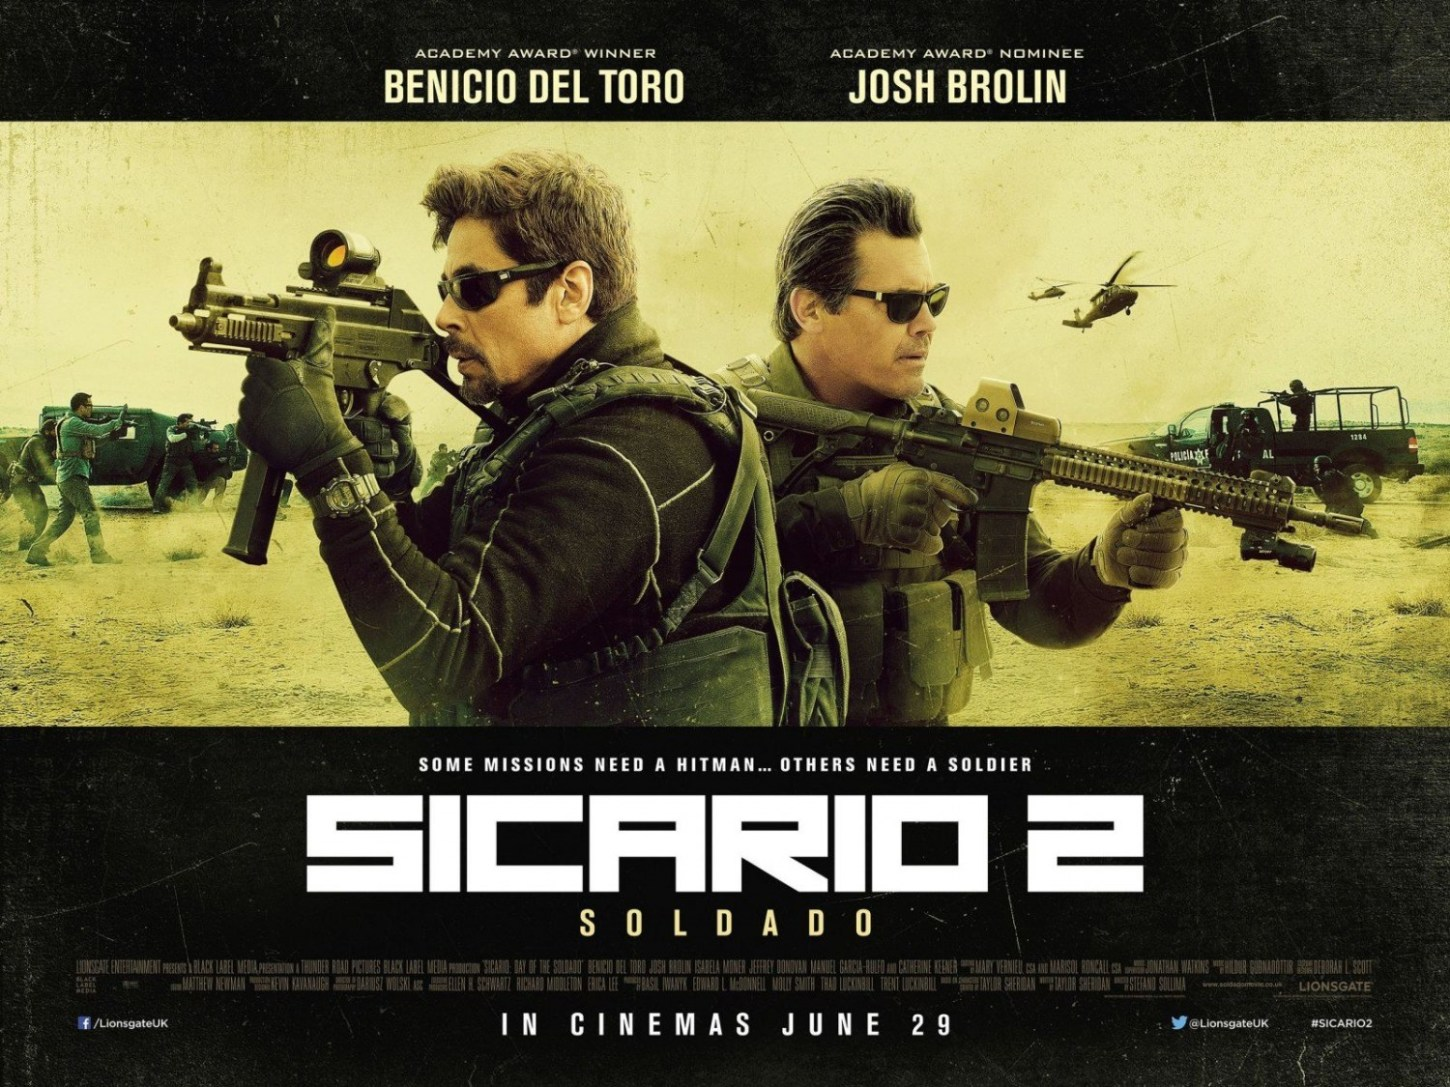 SICARIO: DAY OF THE SOLDADO- This War Needs a Soldier and a Hitman in the New Trailer